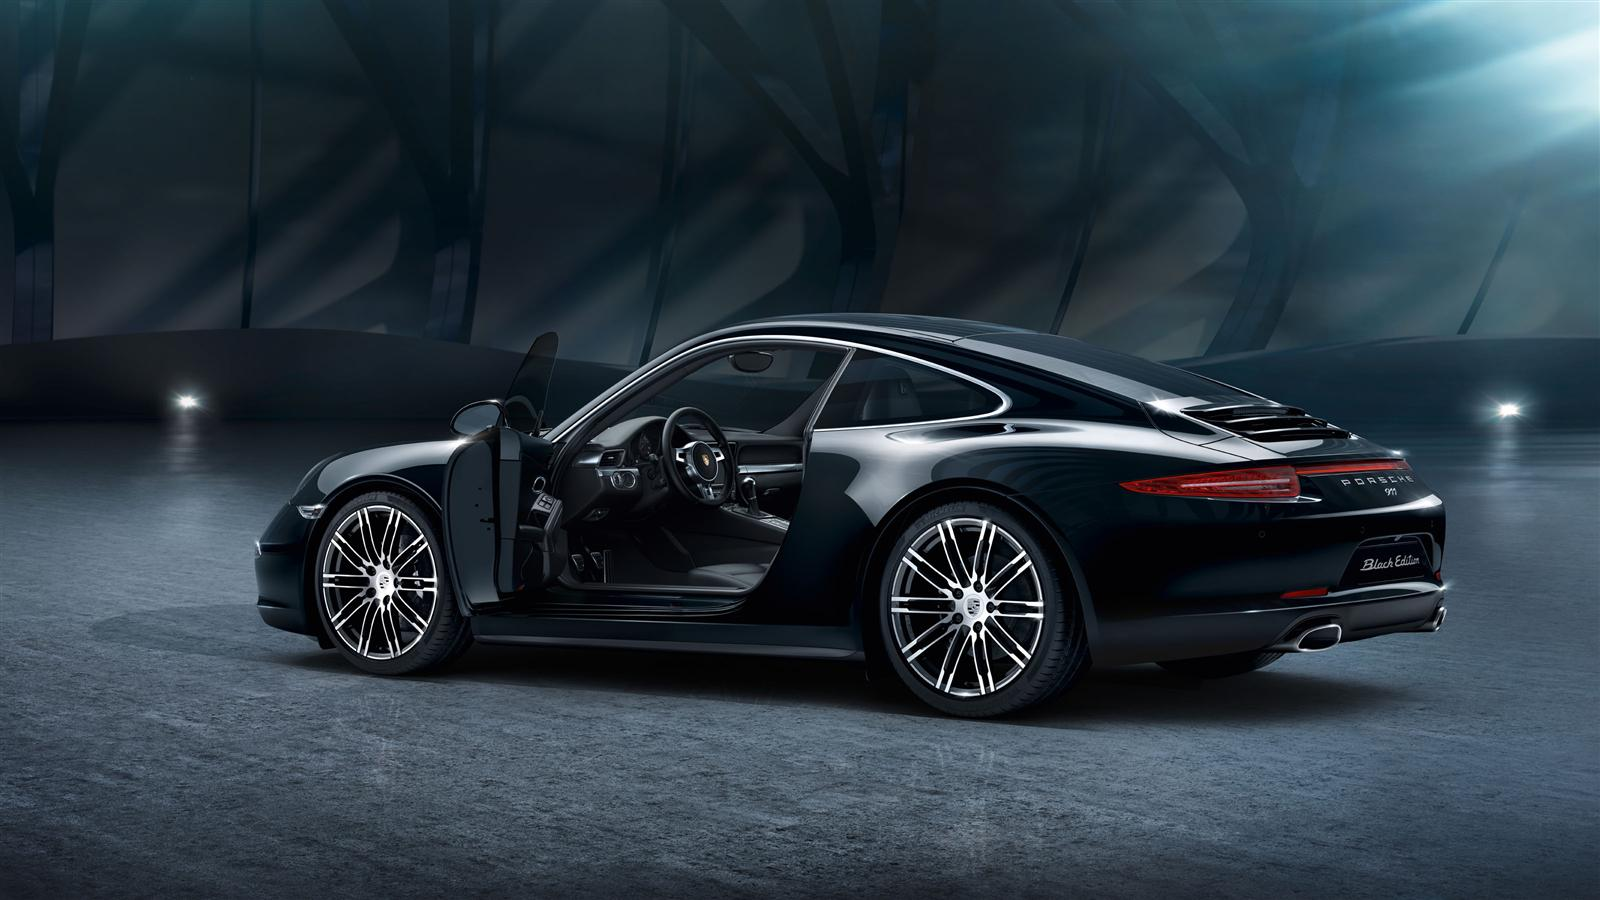 2019 Porsche 911 Black Edition photo - 3